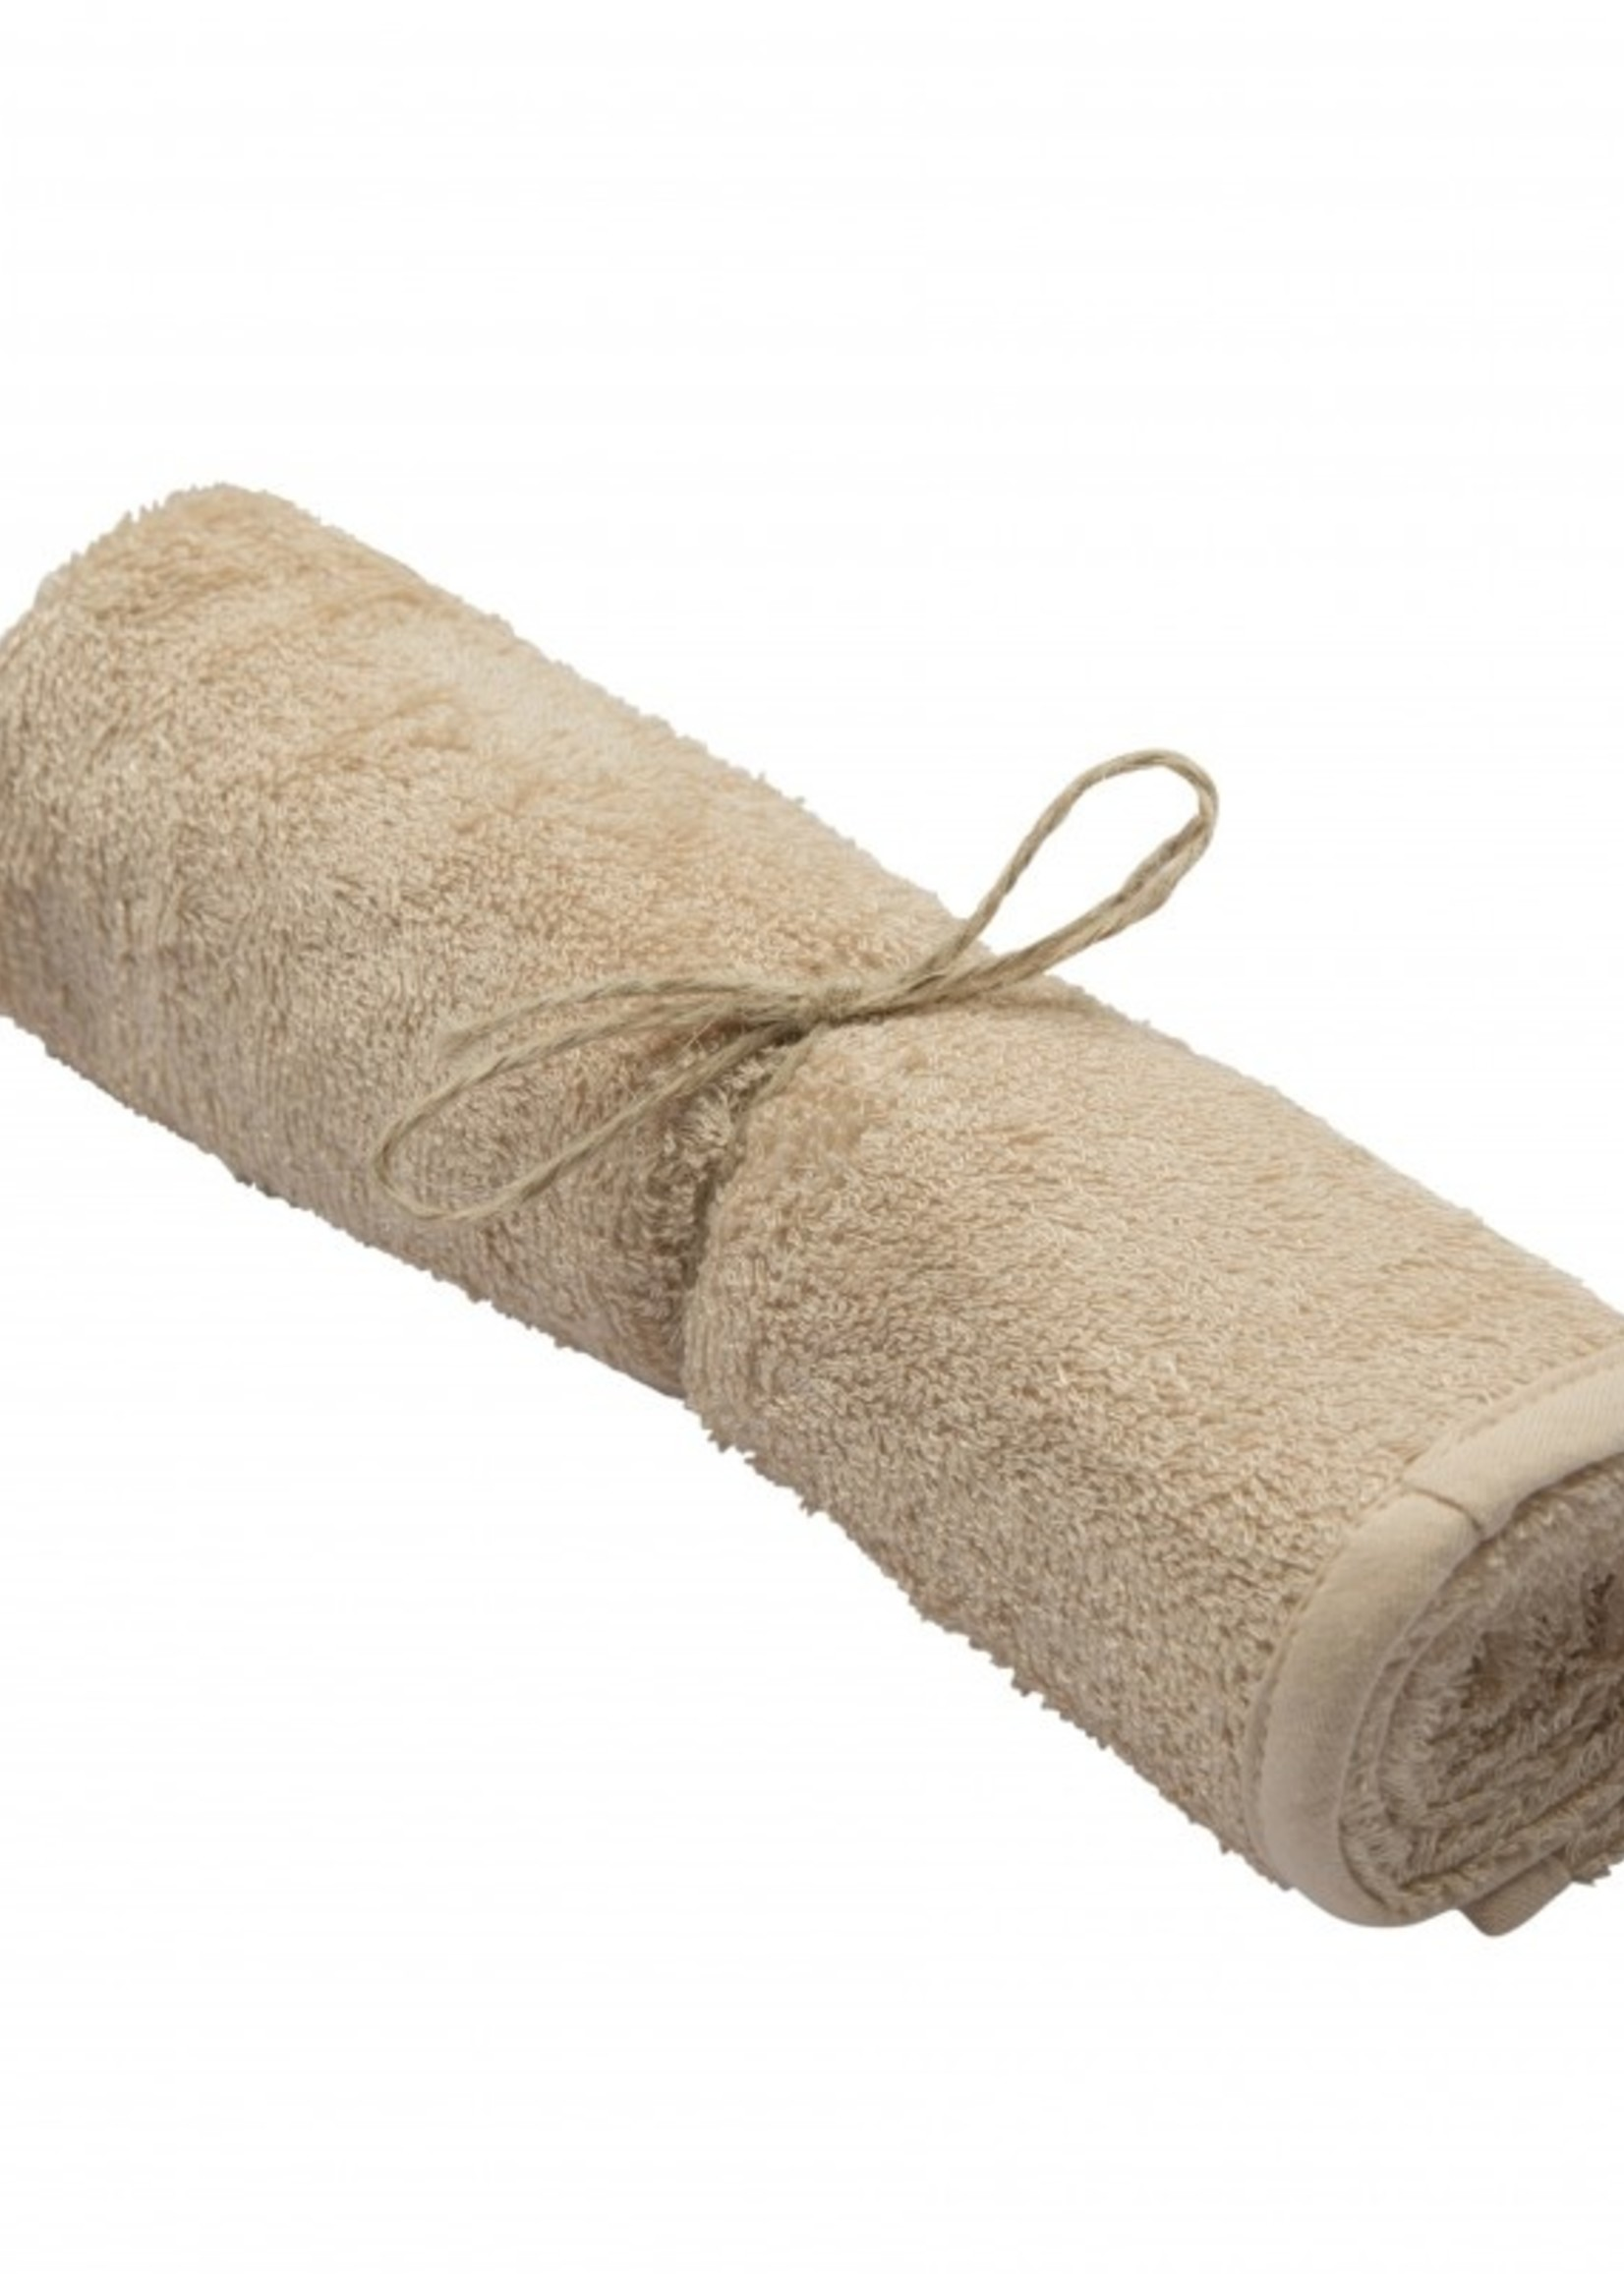 Timboo Towel Medium - Frosted Almond